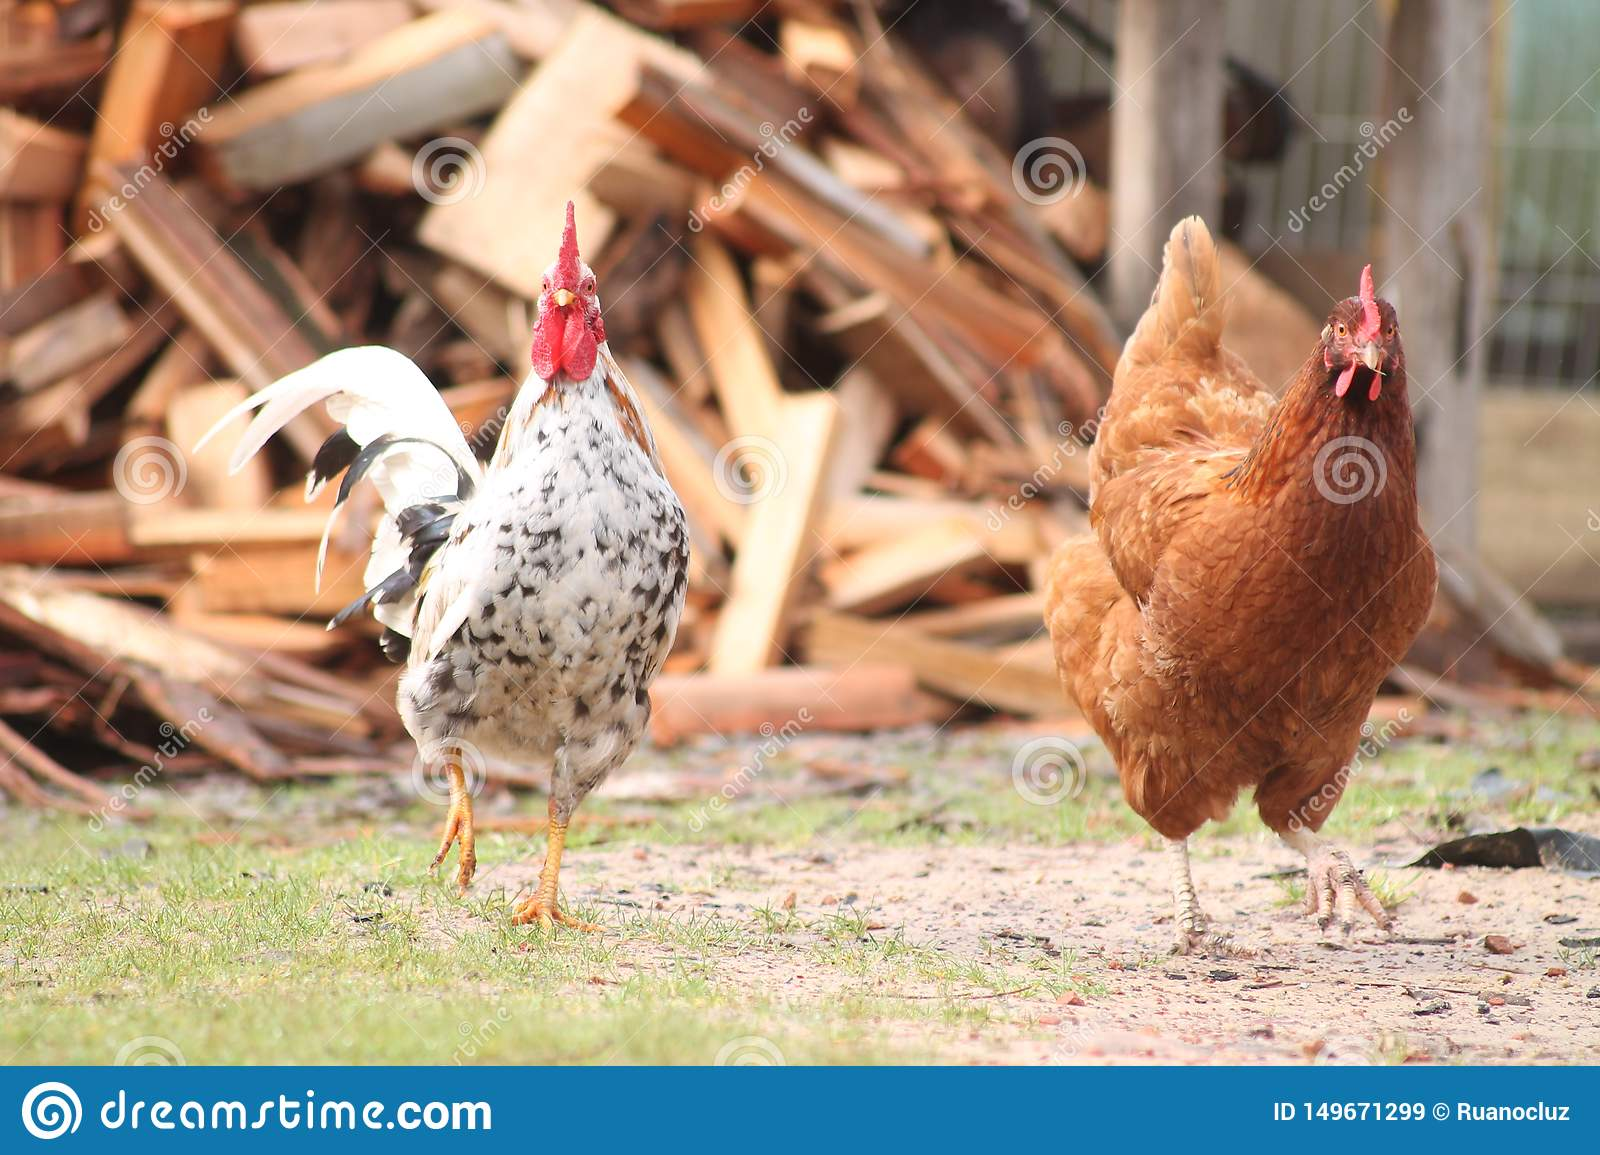 The rooster and the chicken walk by the farm